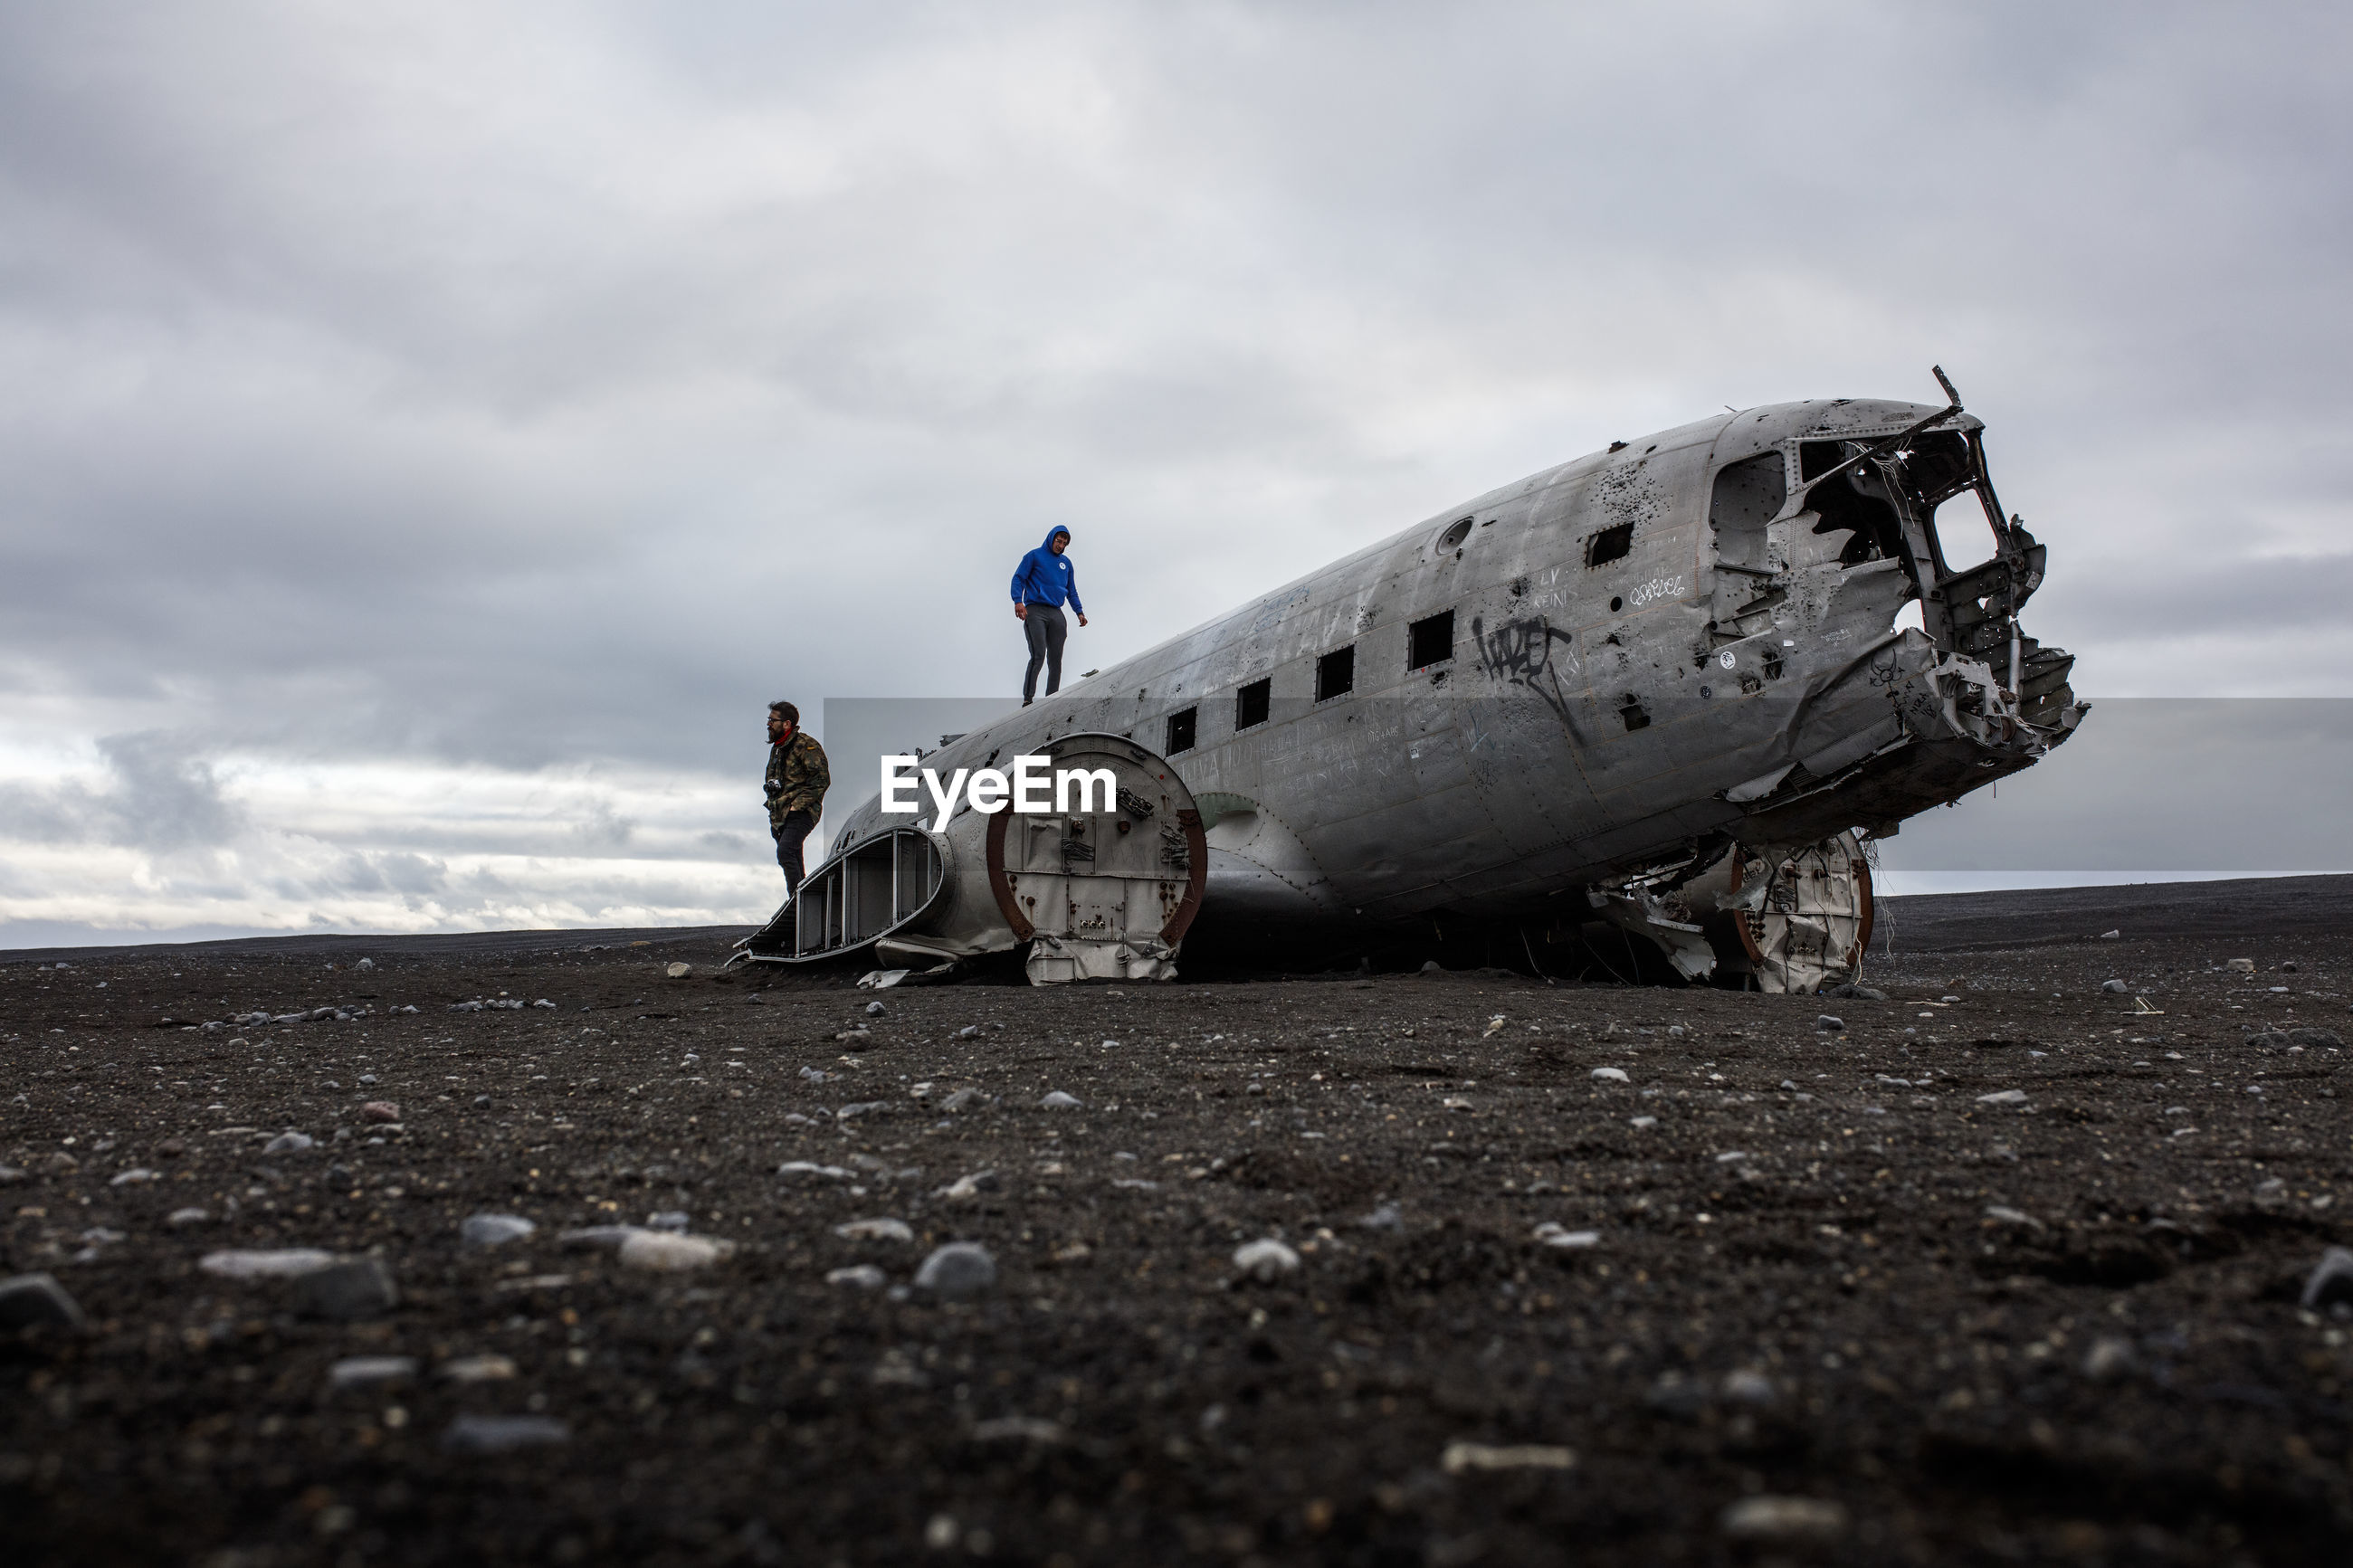 SIDE VIEW OF ABANDONED AIRPLANE